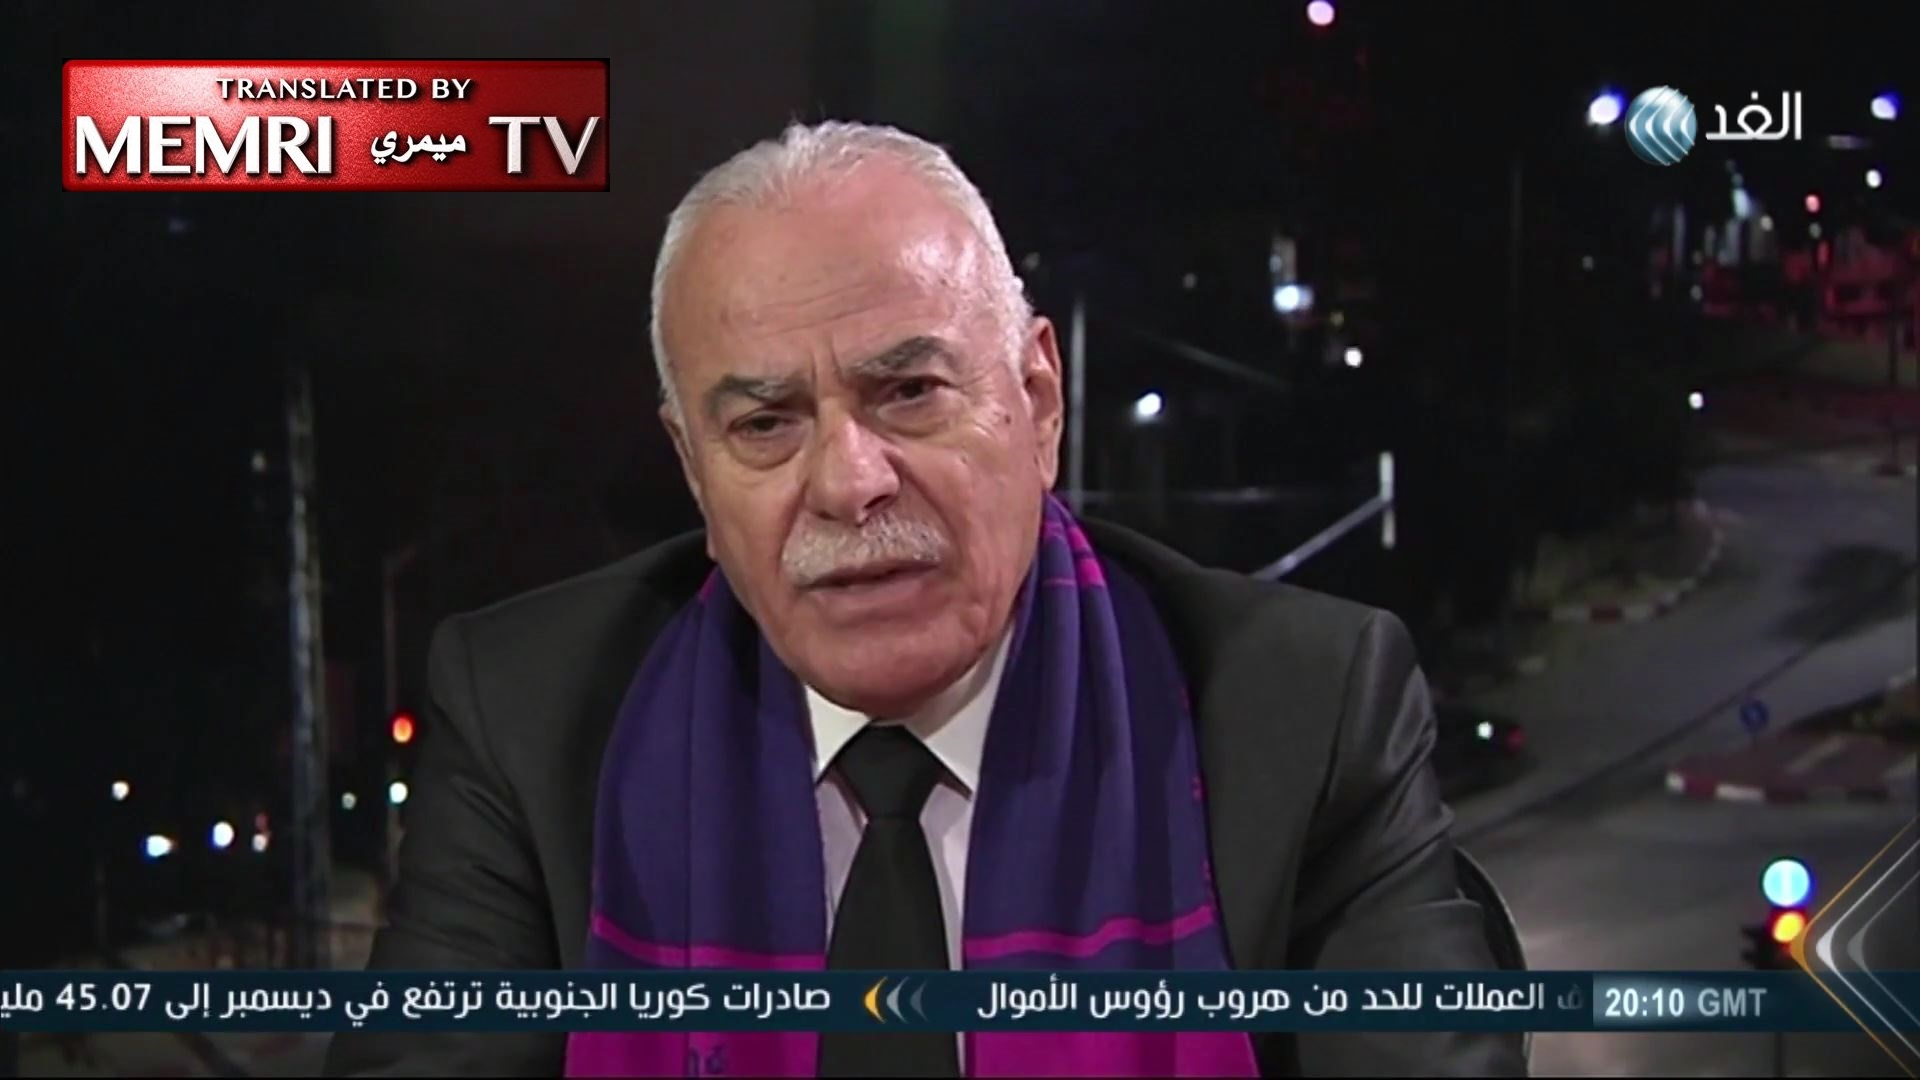 Fatah Official Sultan Abu Al-Einein: Transfer of U.S. Embassy to Jerusalem Will Lead to Renewed Bloodshed